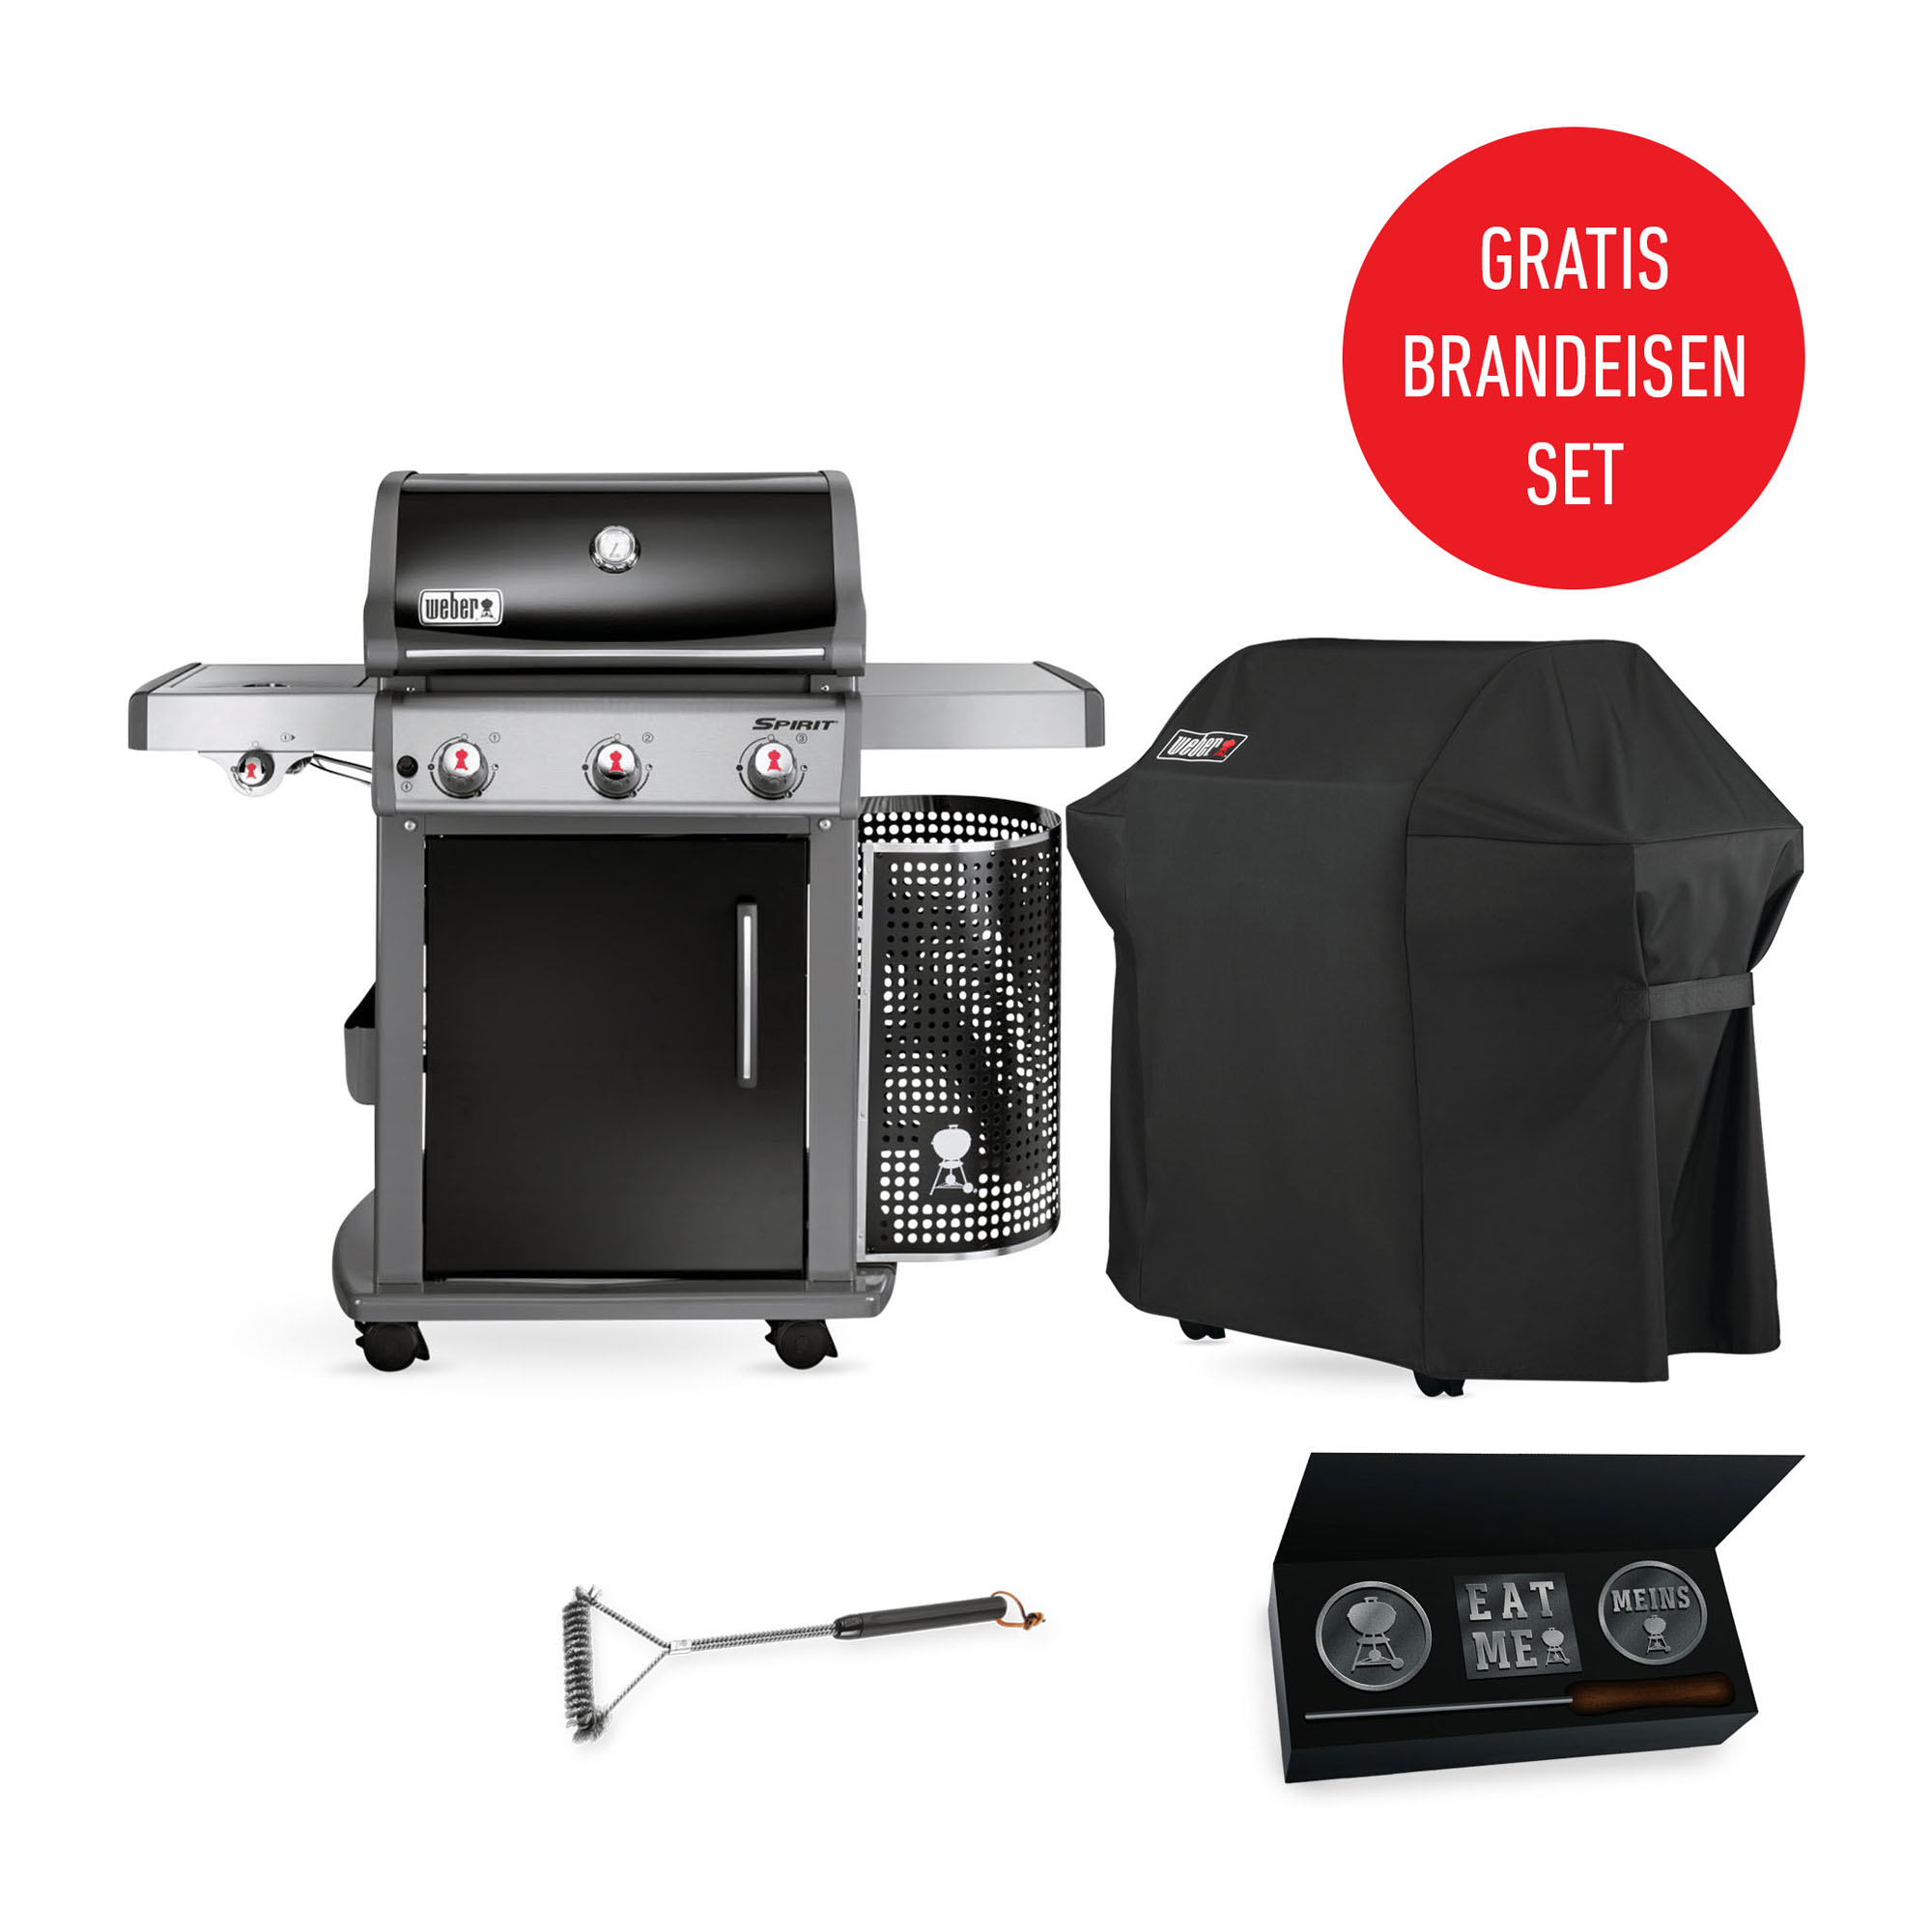 abdeckhaube premium f r spirit 300 serie weber grill original. Black Bedroom Furniture Sets. Home Design Ideas